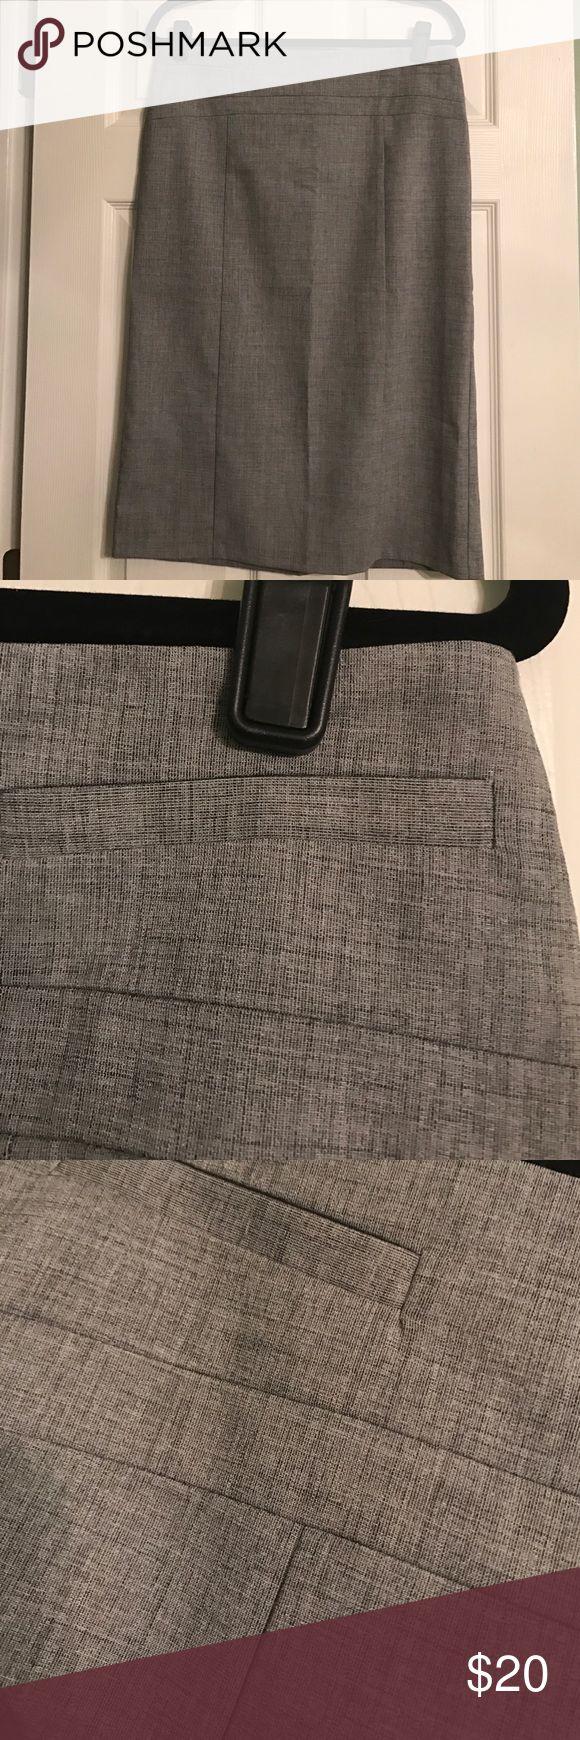 Gray New York and Co pencil skirt size 10 New York and Co gray pencil skirt in size 10! Never worn and in excellent condition! No stains or holes and comes from a smoke free home! New York & Company Skirts Pencil